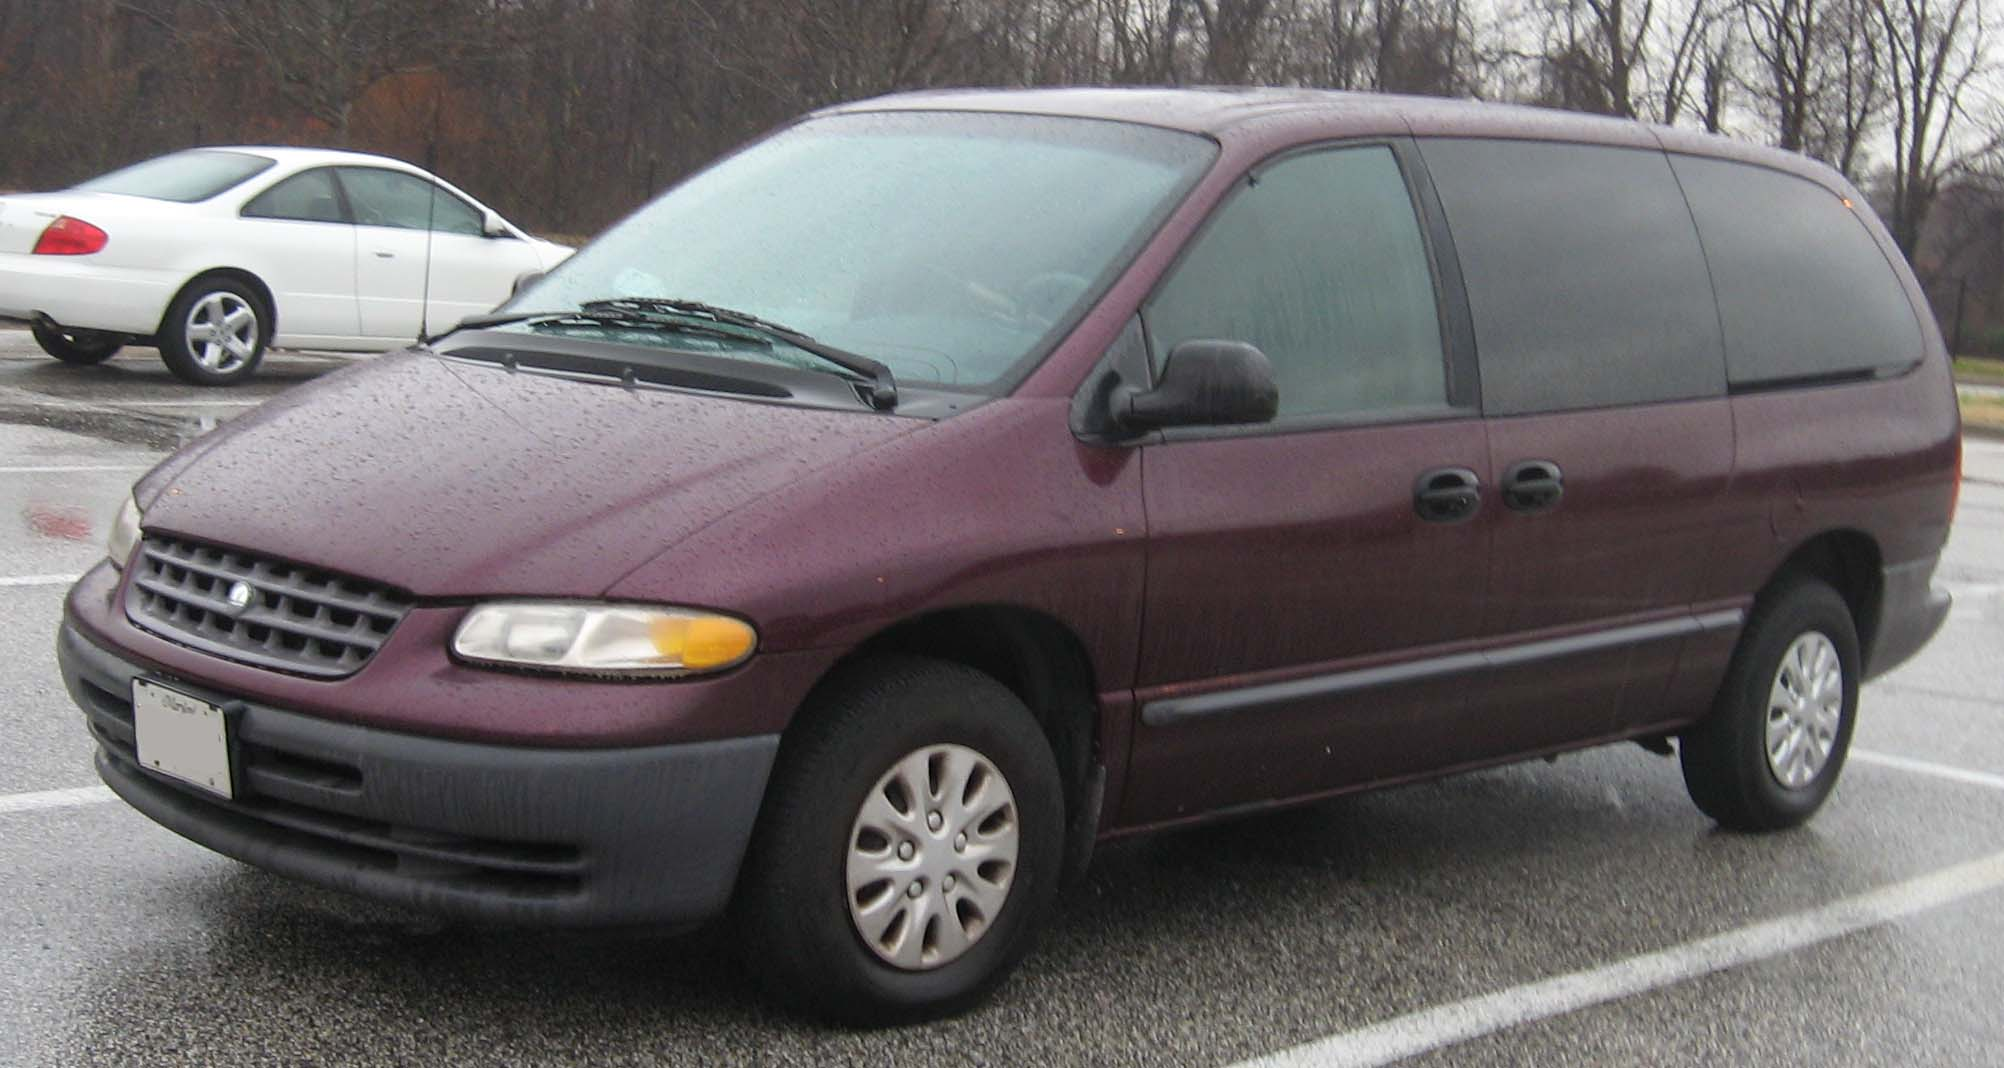 Plymouth voyager photo - 4